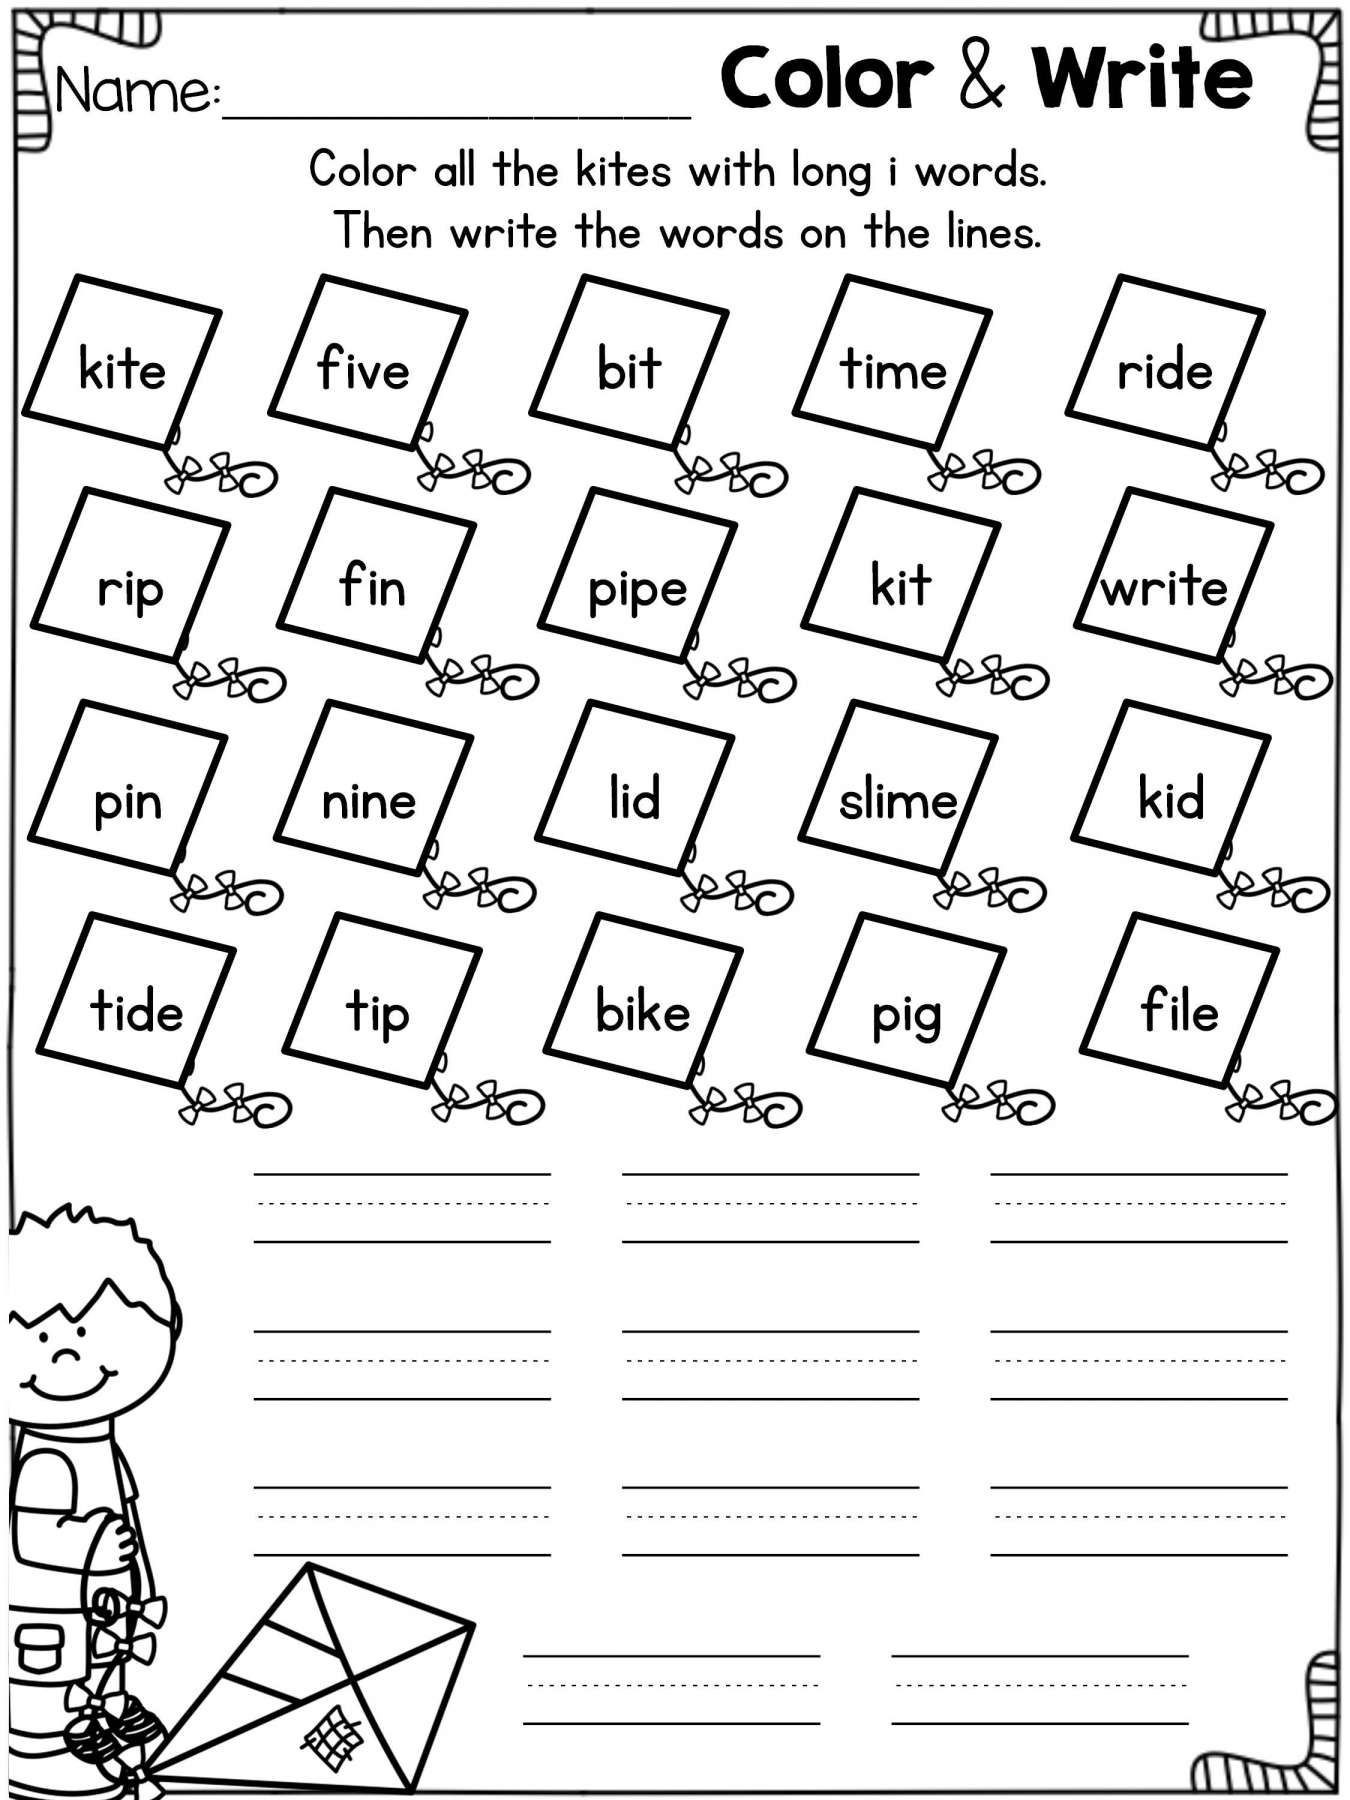 Silent E Worksheets Grade 2 12 Long Vowel Silent E Worksheets 2nd Grade